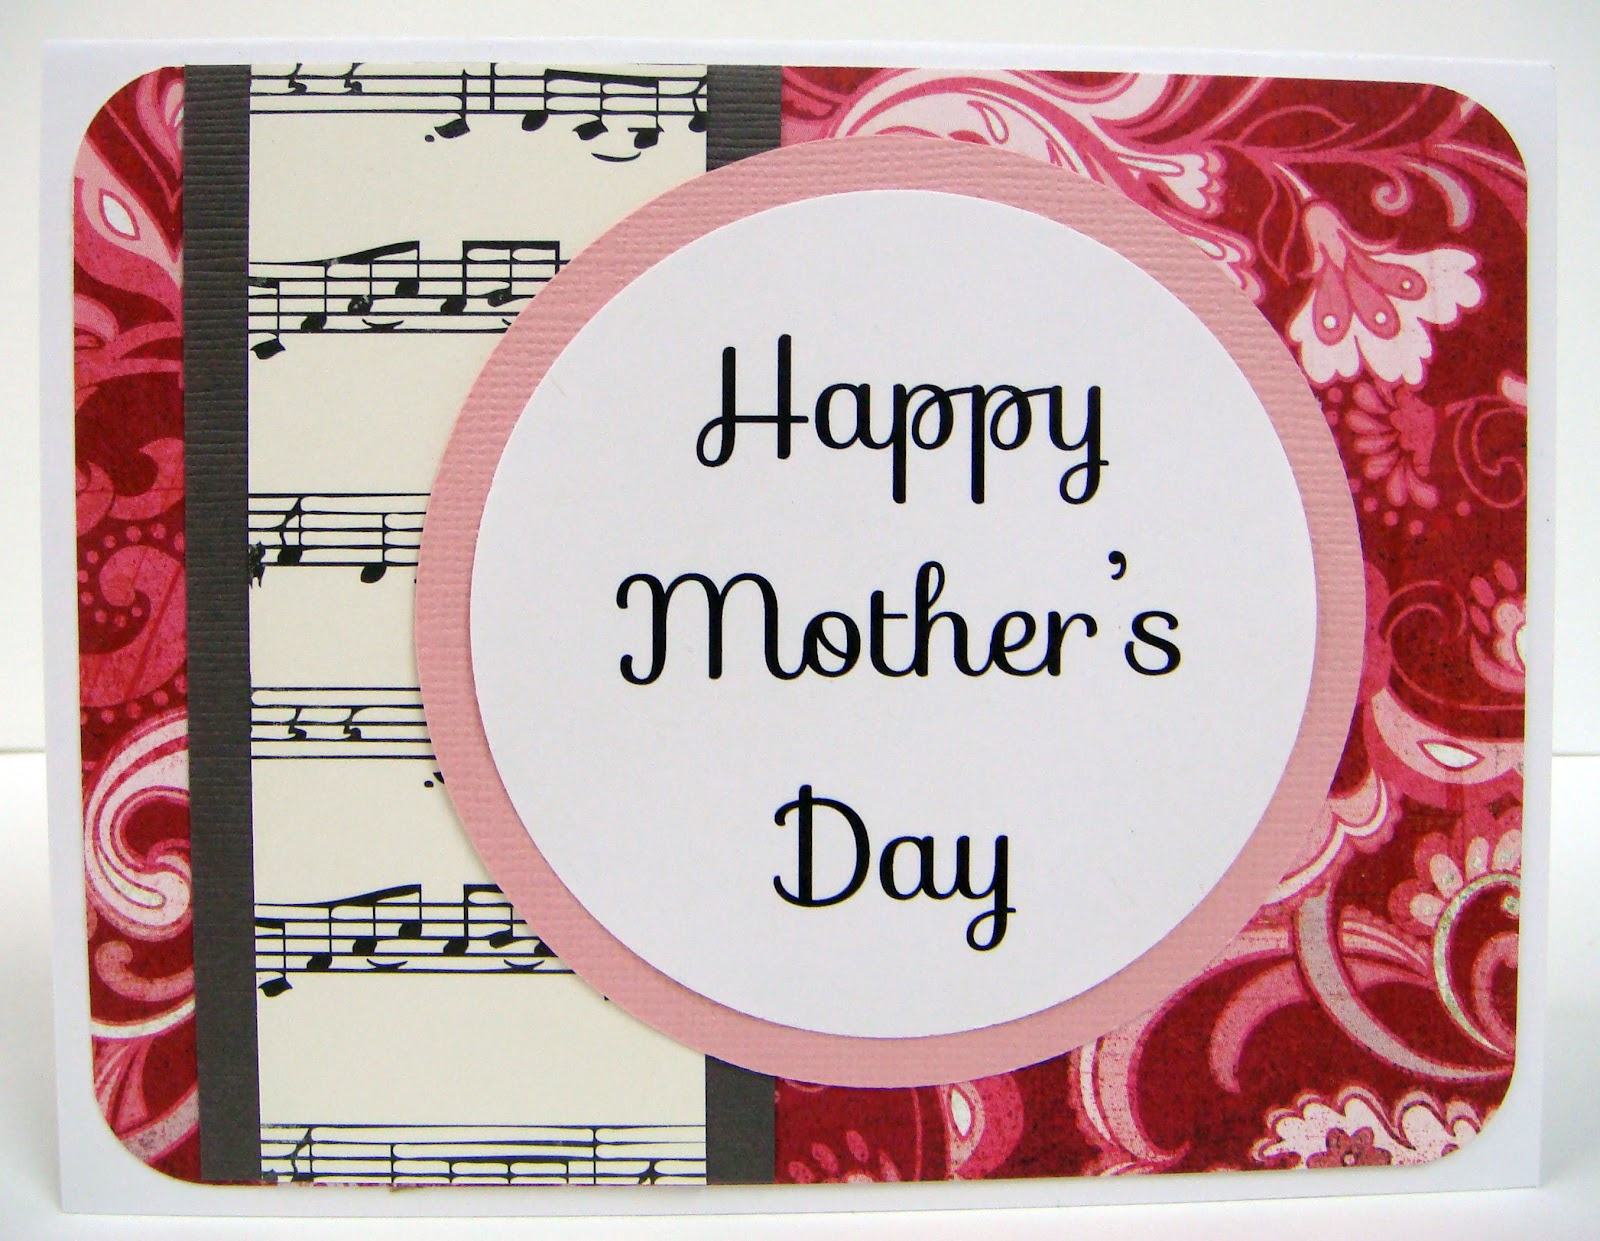 happy mothers day wishes card give our mothers wallpaper